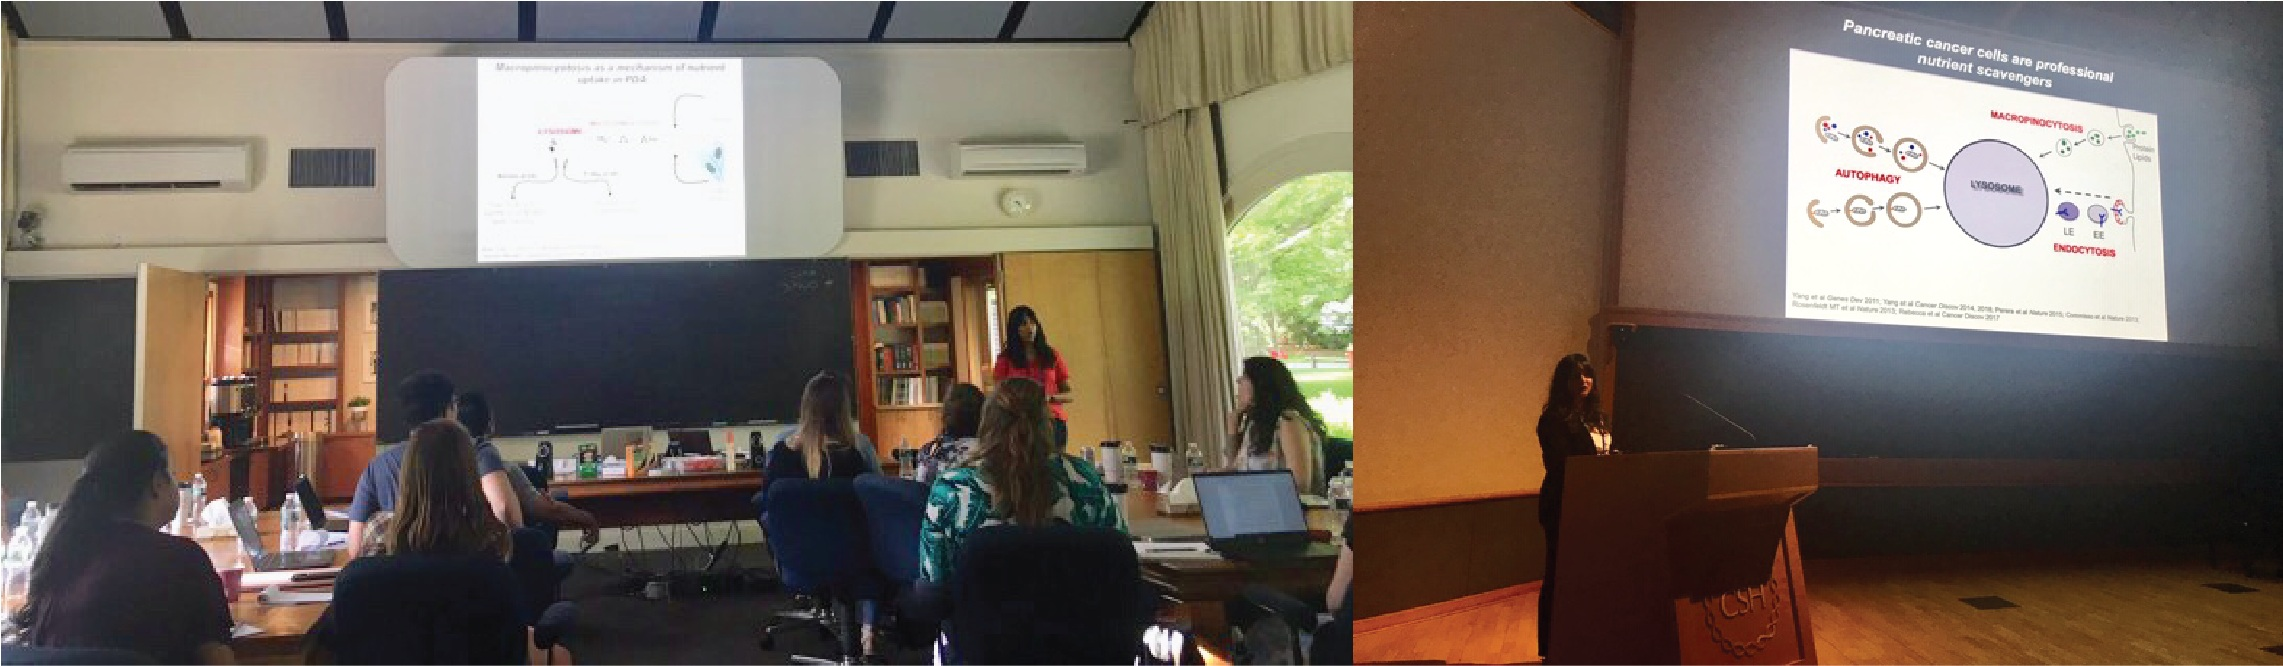 Rushika presents on autophagy and lysosomes at the Cold Spring Harbor Labs workshop on Pancreatic Cancer